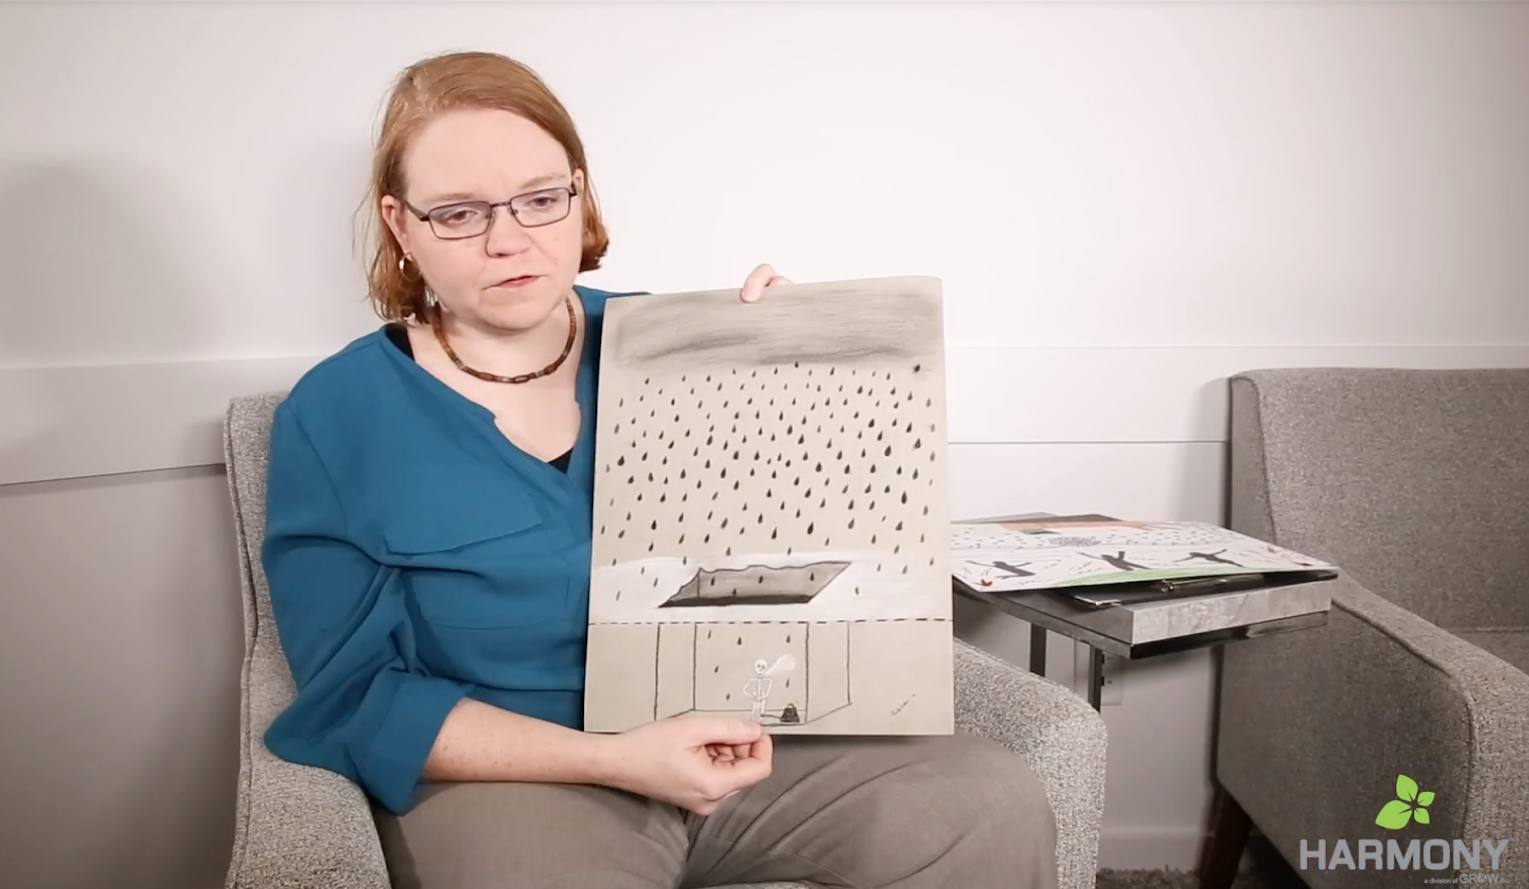 patient holds her art showing how depression feels